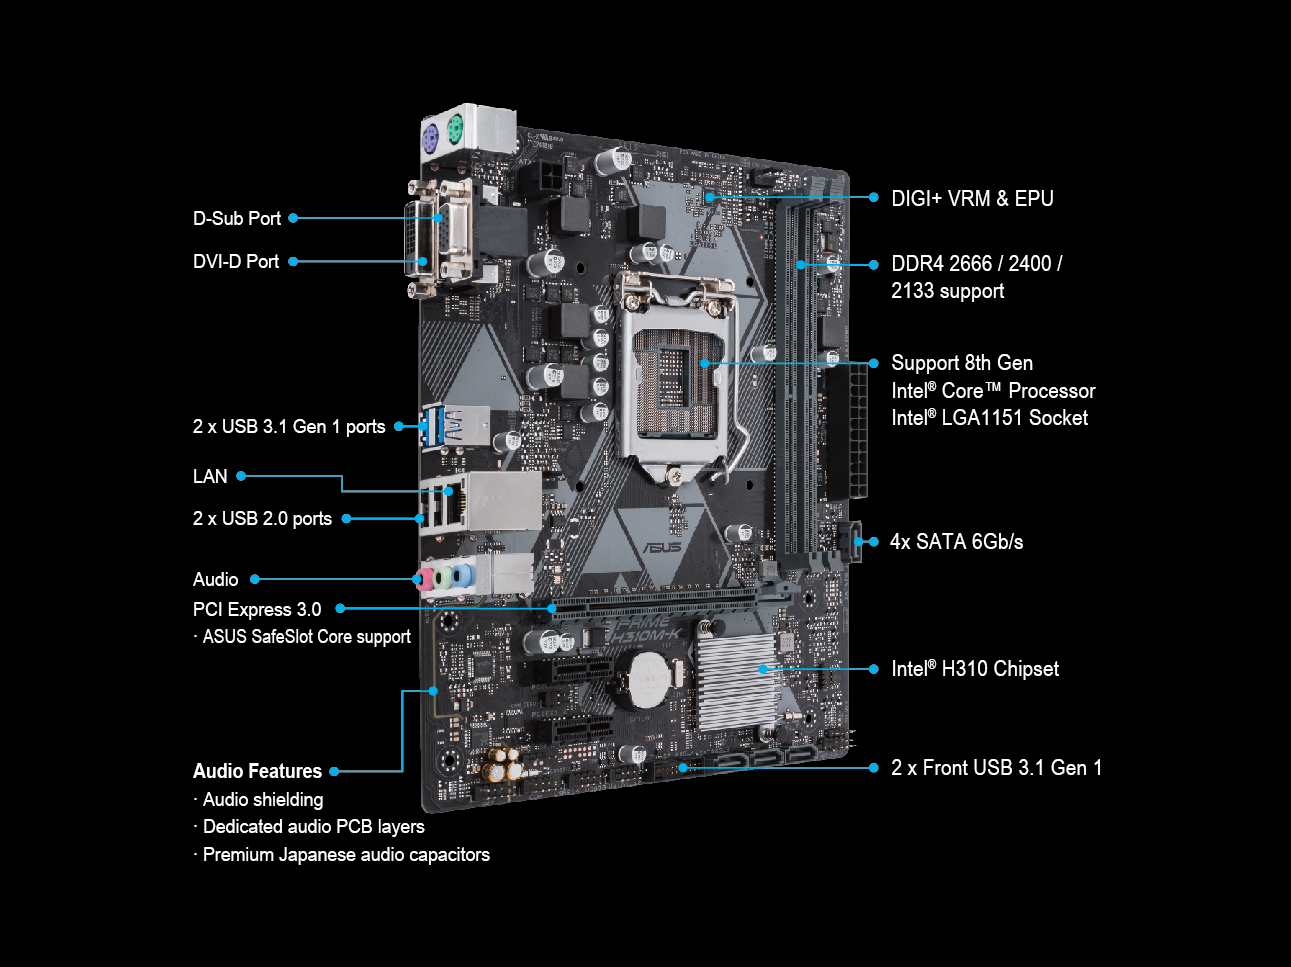 Prime H310m K Motherboards Asus Usa Go Back Gt Gallery For Cool Circuit Board Design 300 Series Provide The Solid Foundation Needed Your First Build Plus Flexibility To Grow With Ambitions